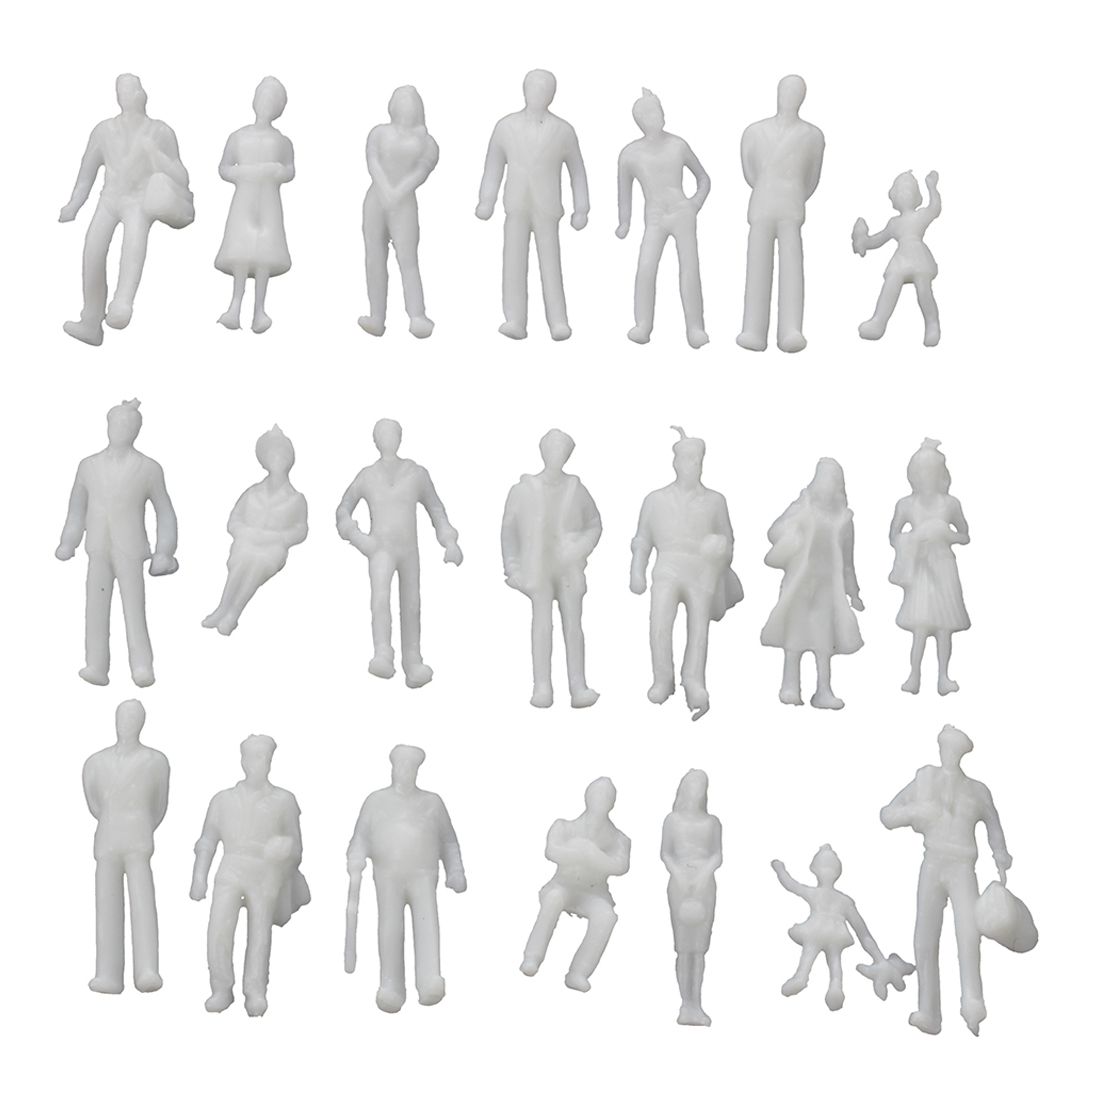 100Pcs Model Train People Figures Scale HO TT (1 To 100), Assorted Style, Great Collectibles--Light Grey